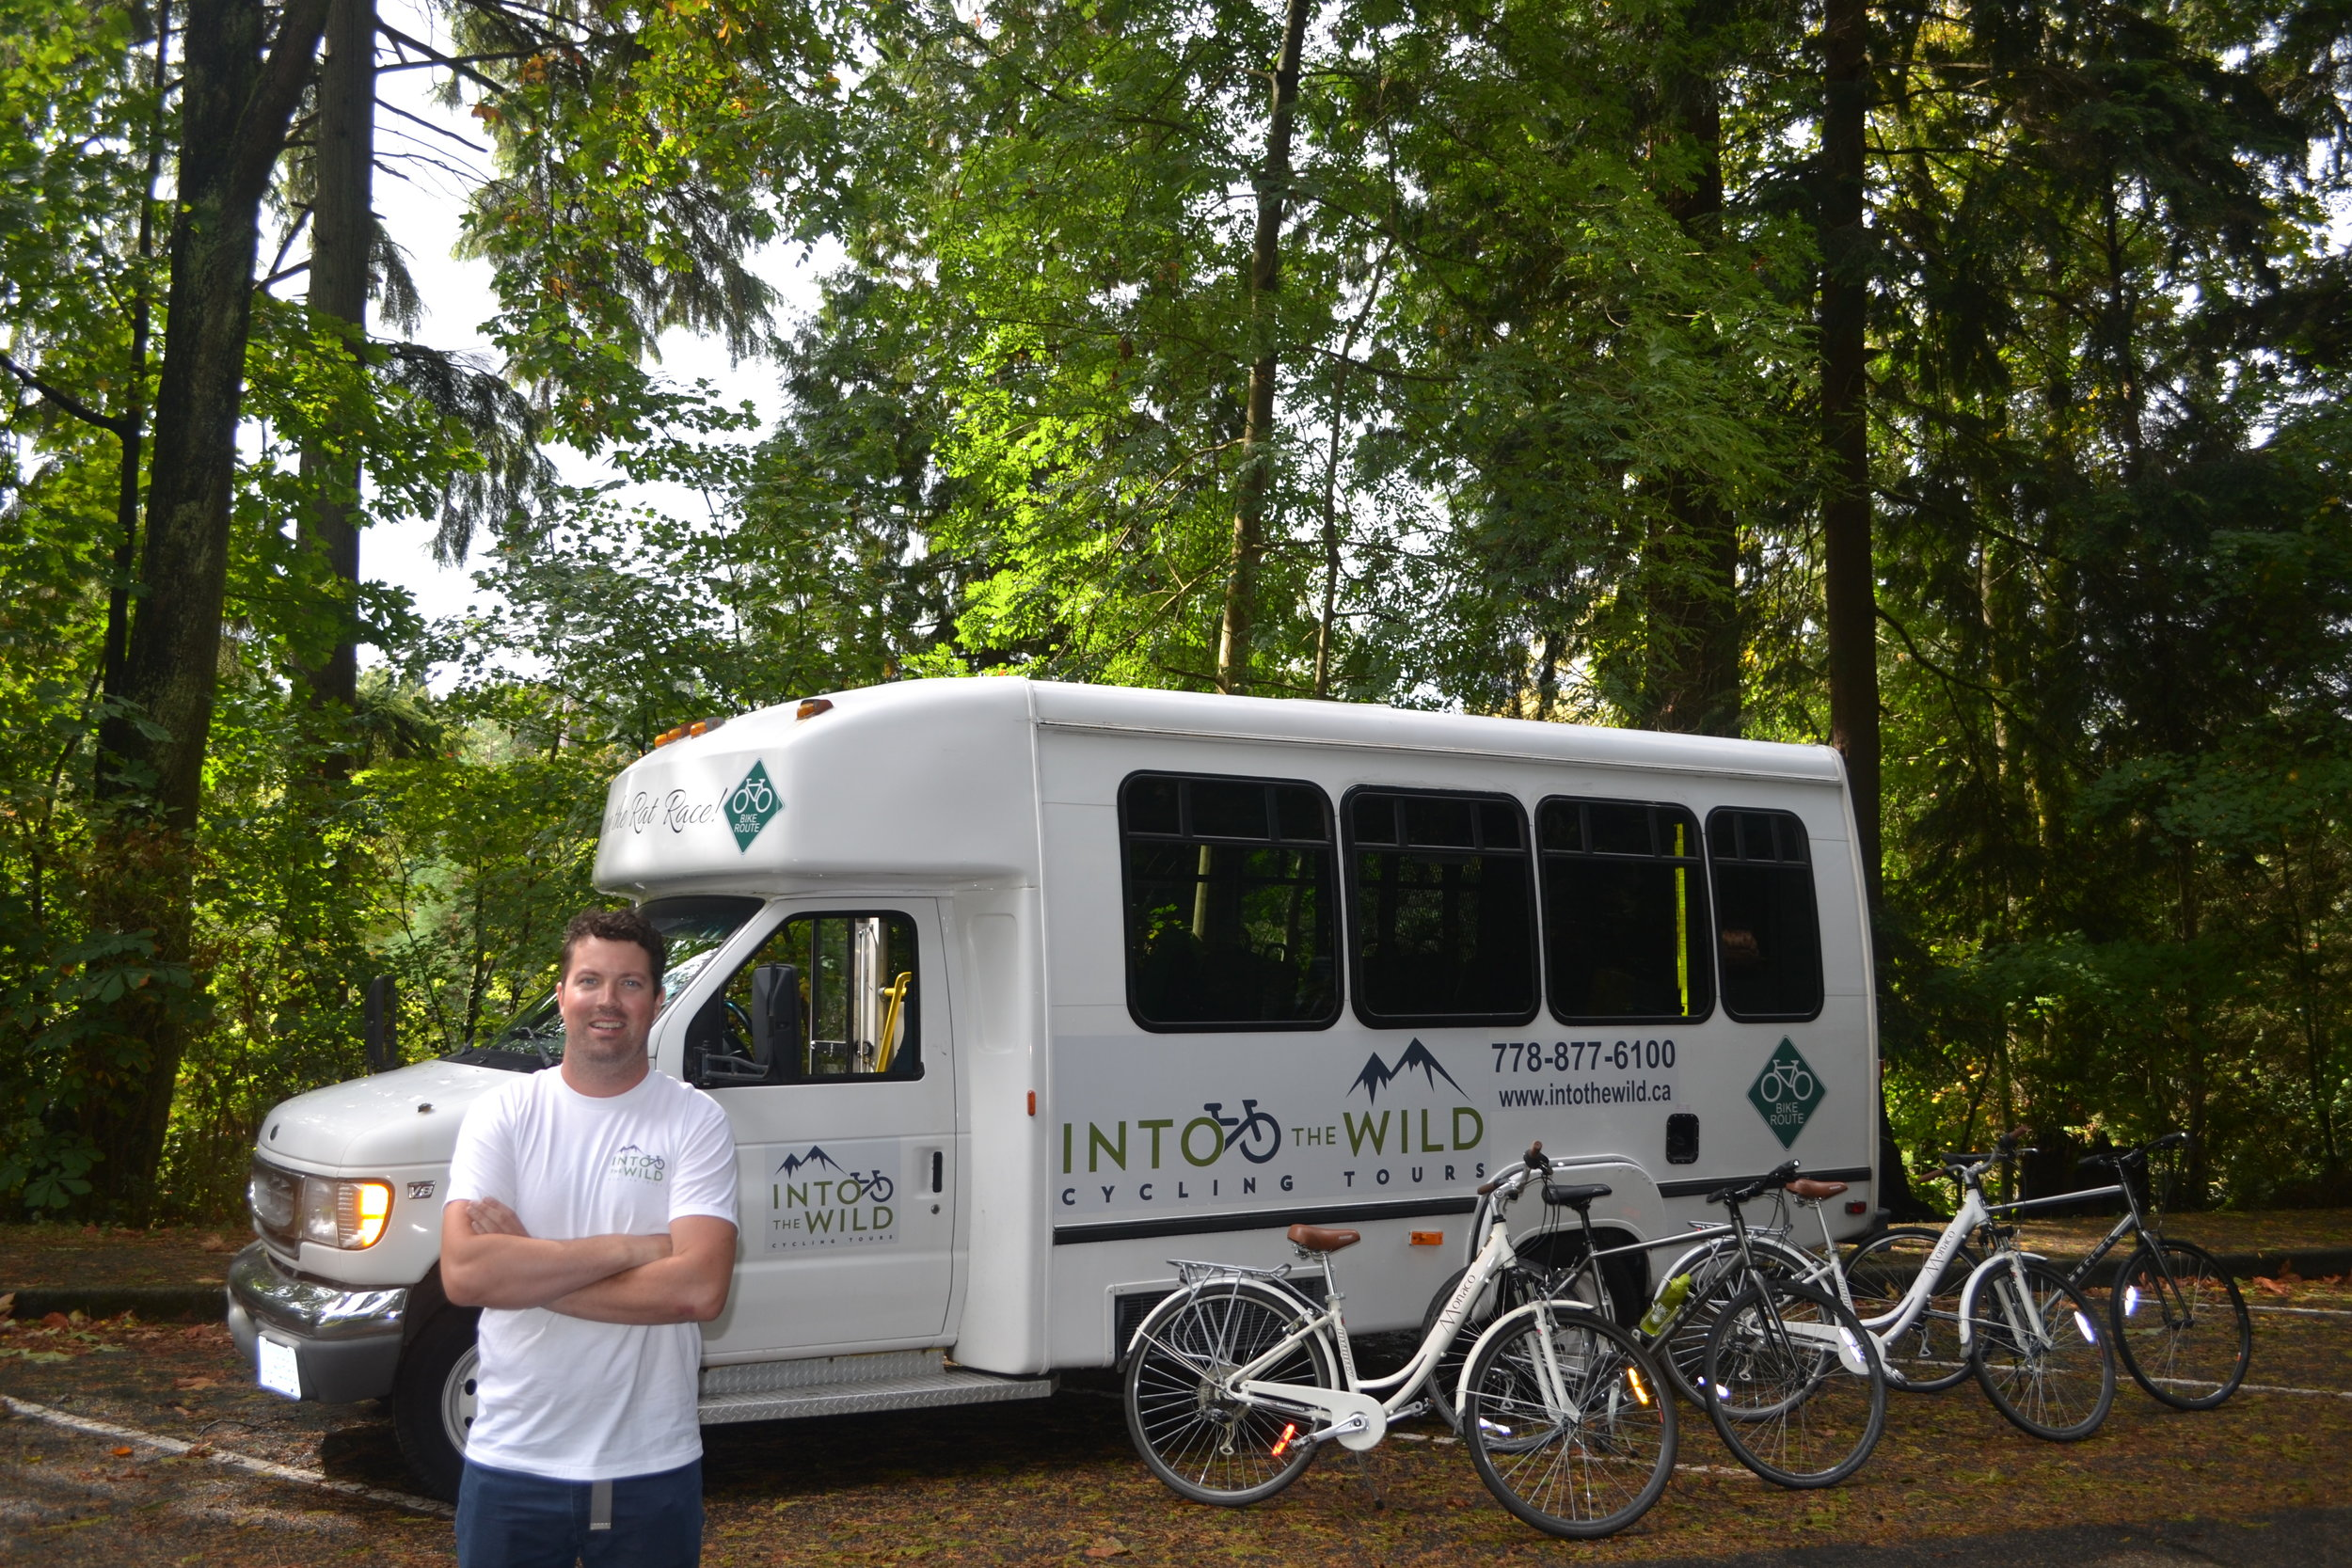 Into The Wild bus and your tour guide